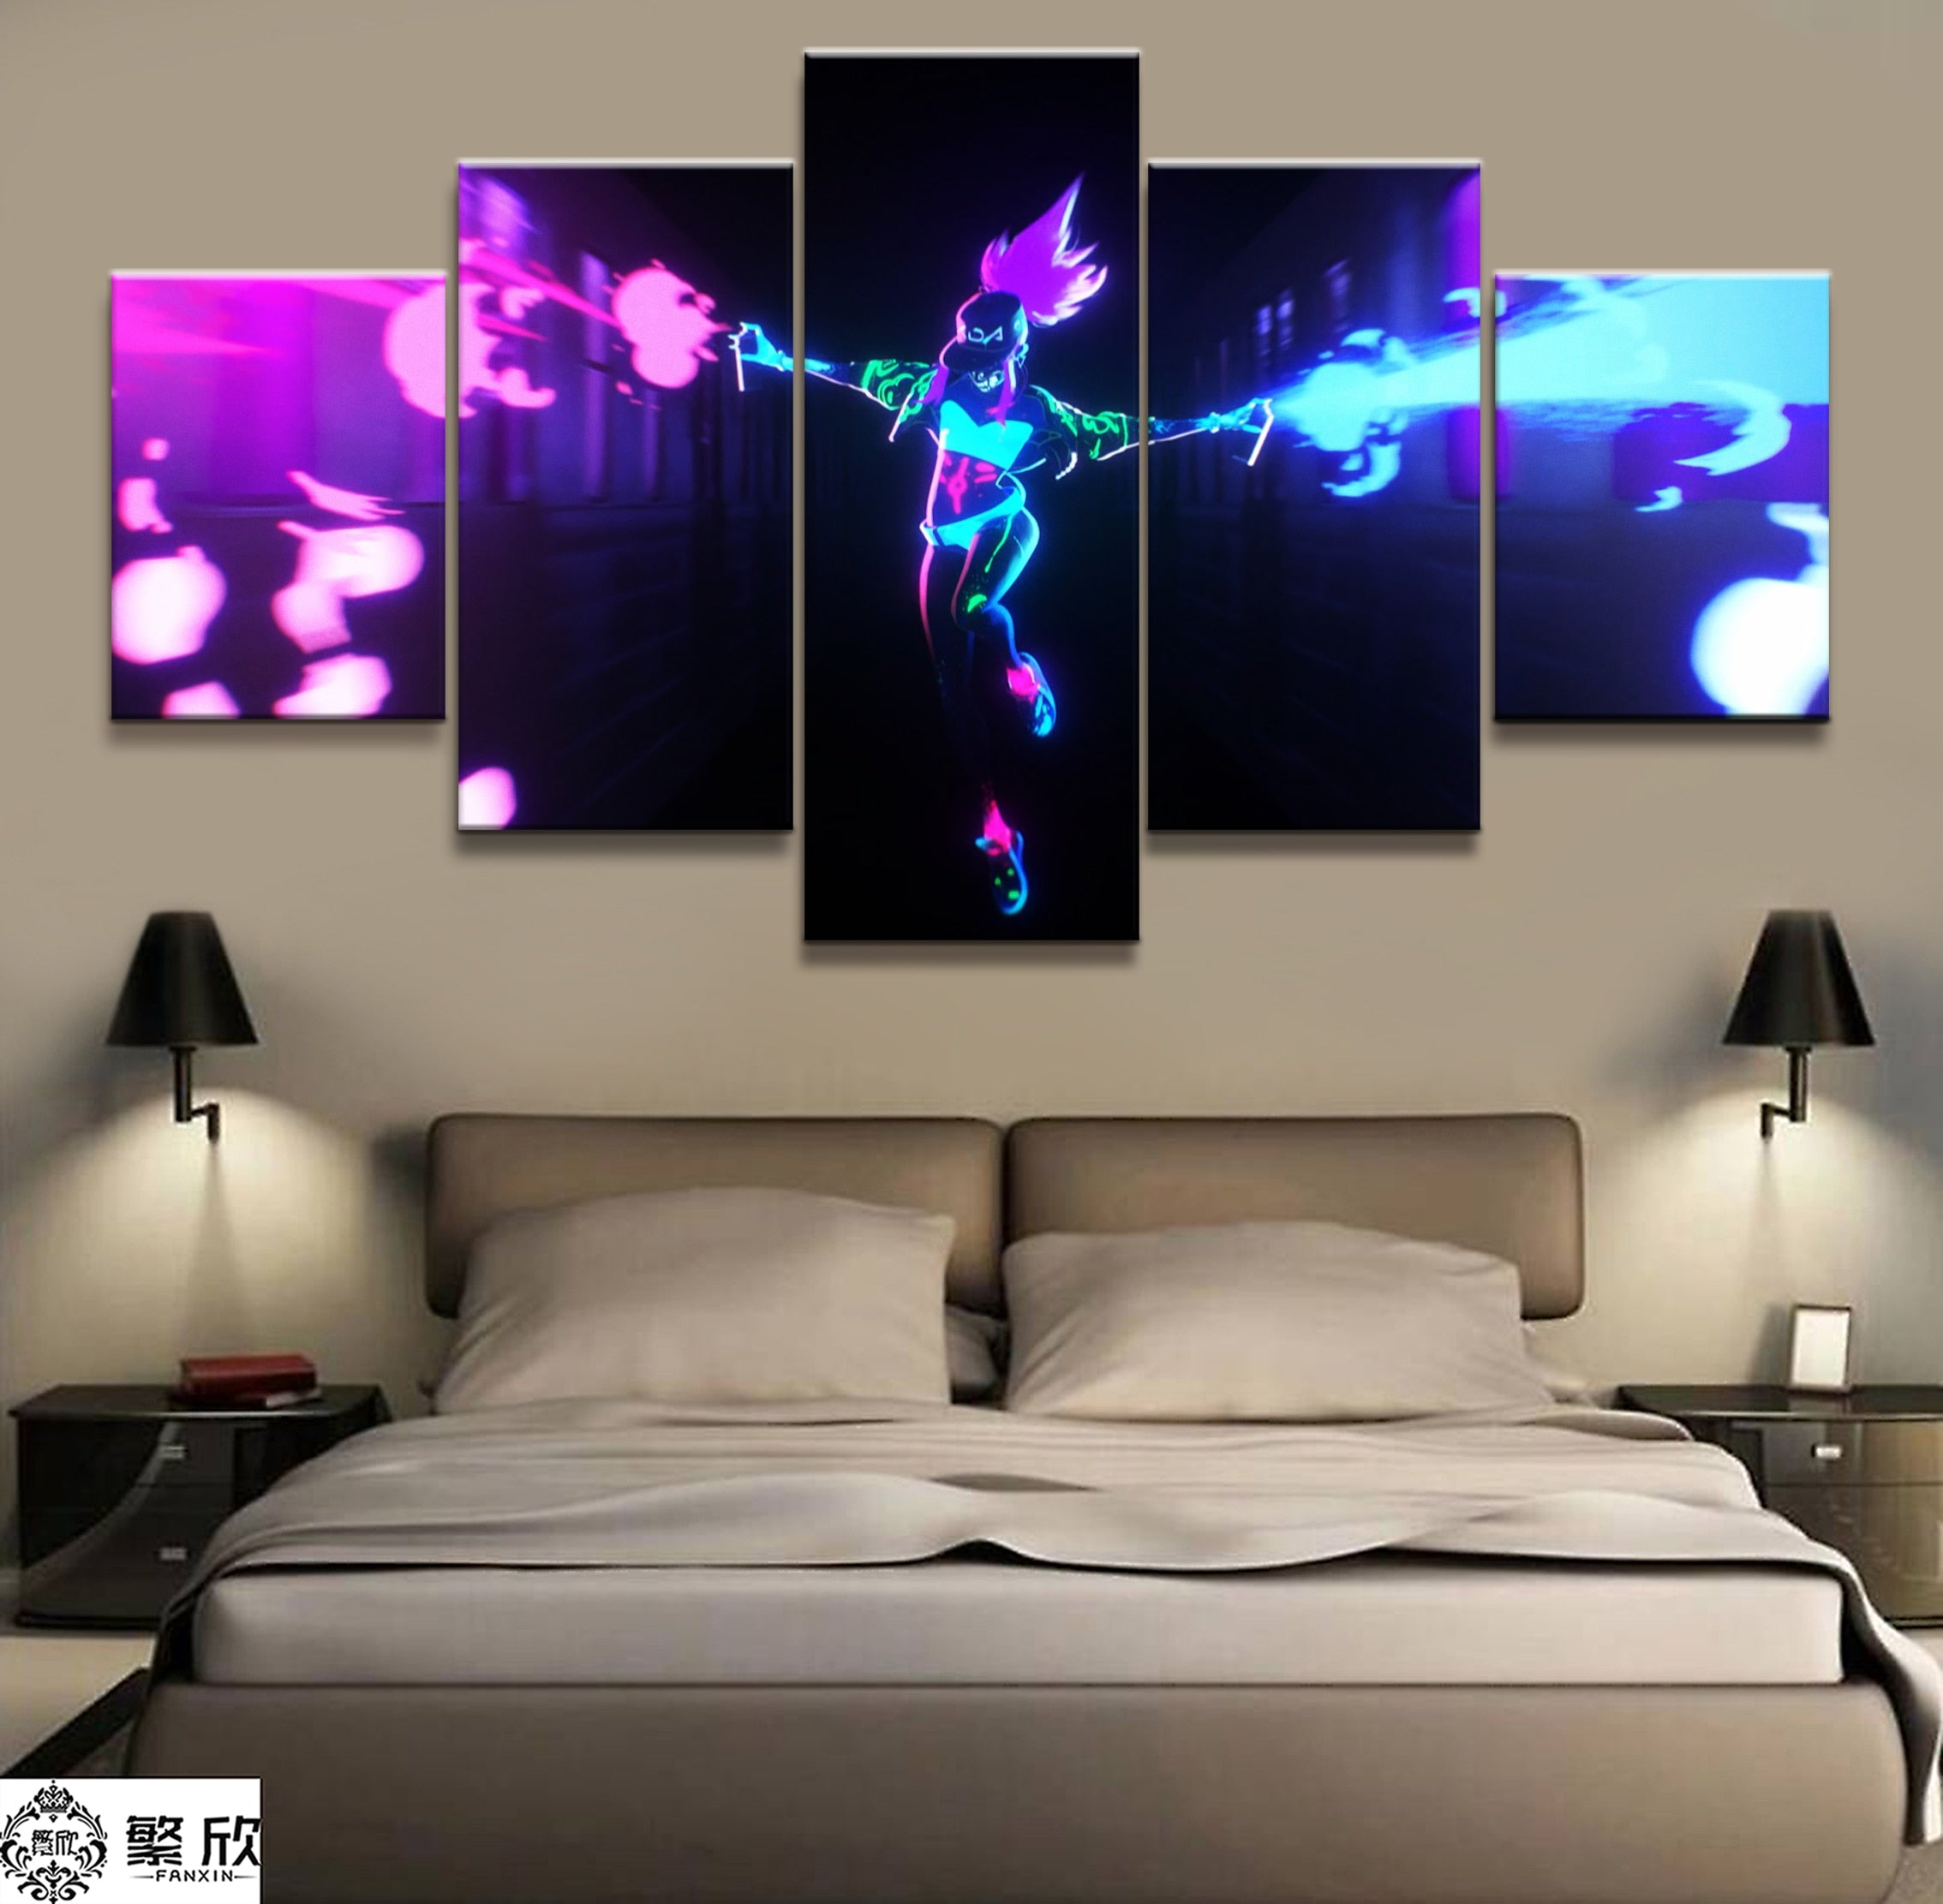 5 Panel Akali K/DA LOL League of Legends Game Canvas Printed Painting